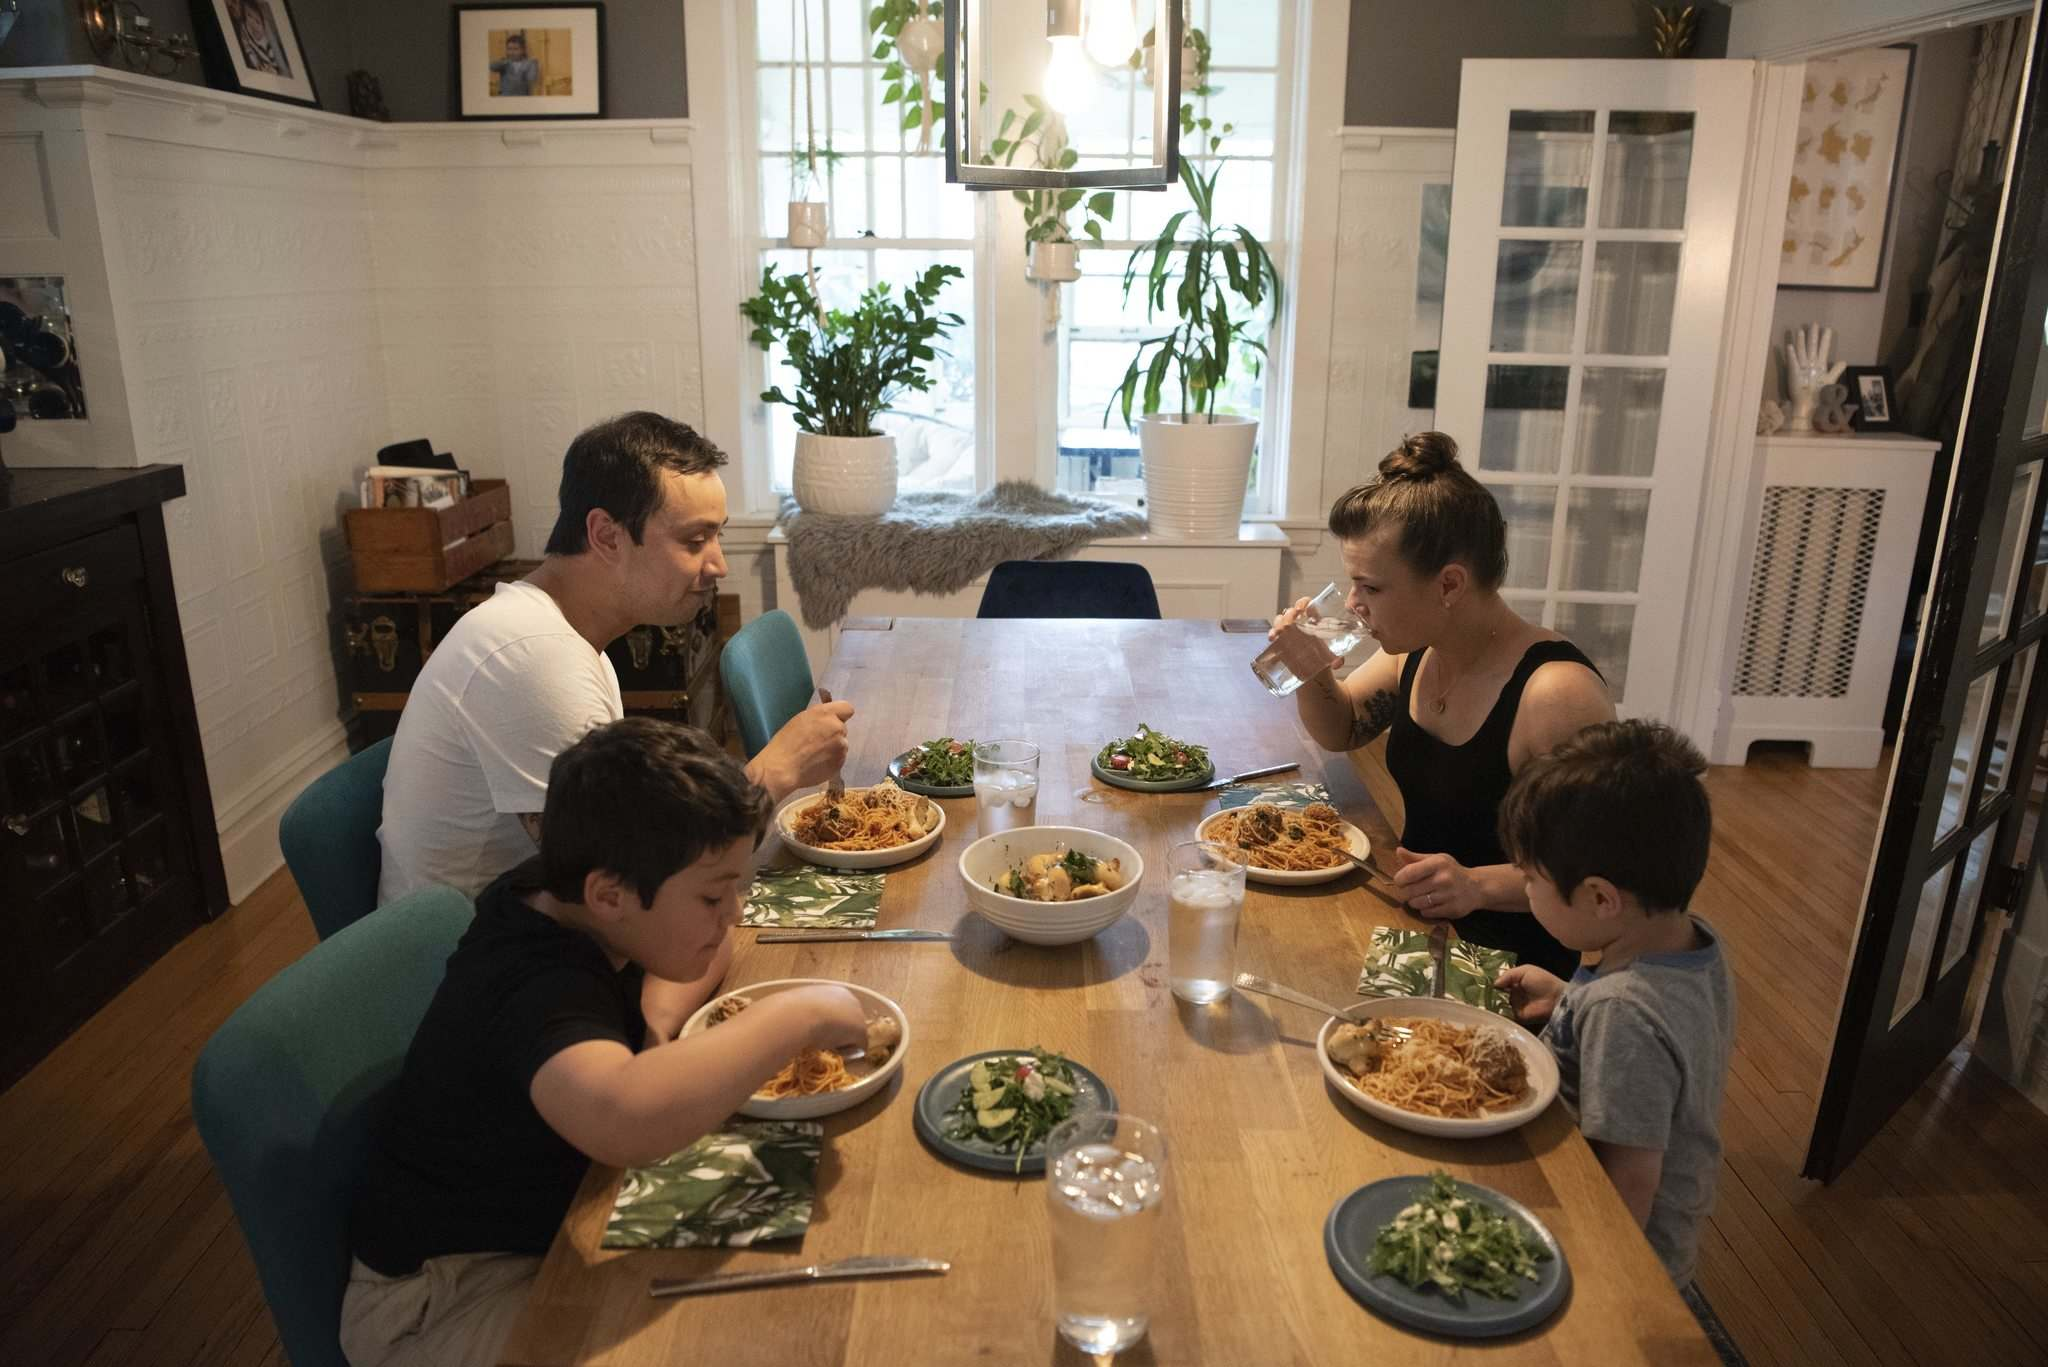 ALEX LUPUL / WINNIPEG FREE PRESS</p><p>Kyle and Kristen Lew, the husband and-wife team behind the café Lark, sit down for a family meal with their two children, Charlie, left, and Oliver.</p>